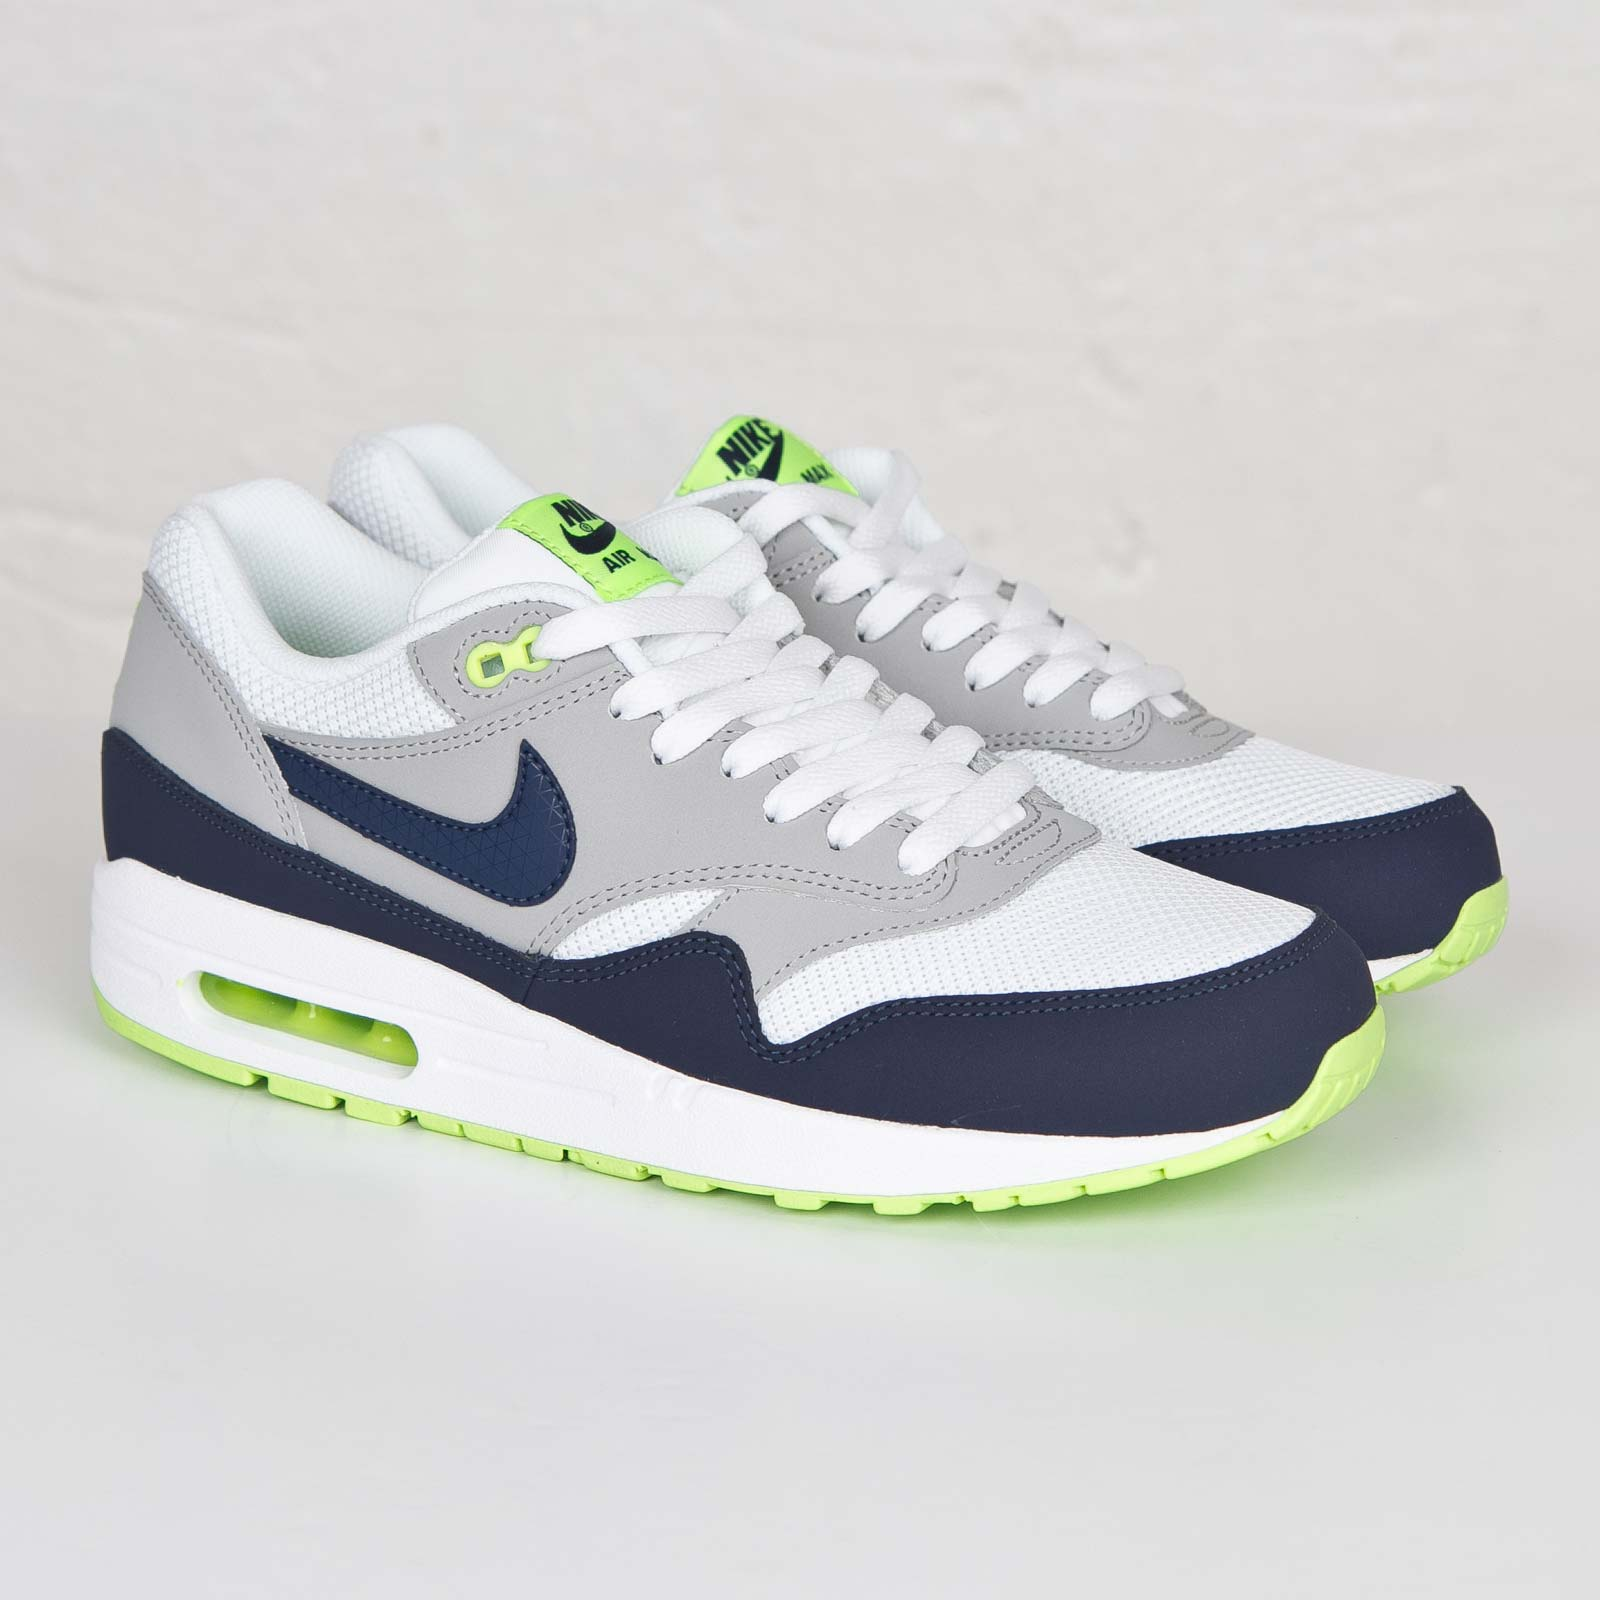 innovative design 4d351 3ad51 Nike Air Max 1 Essential